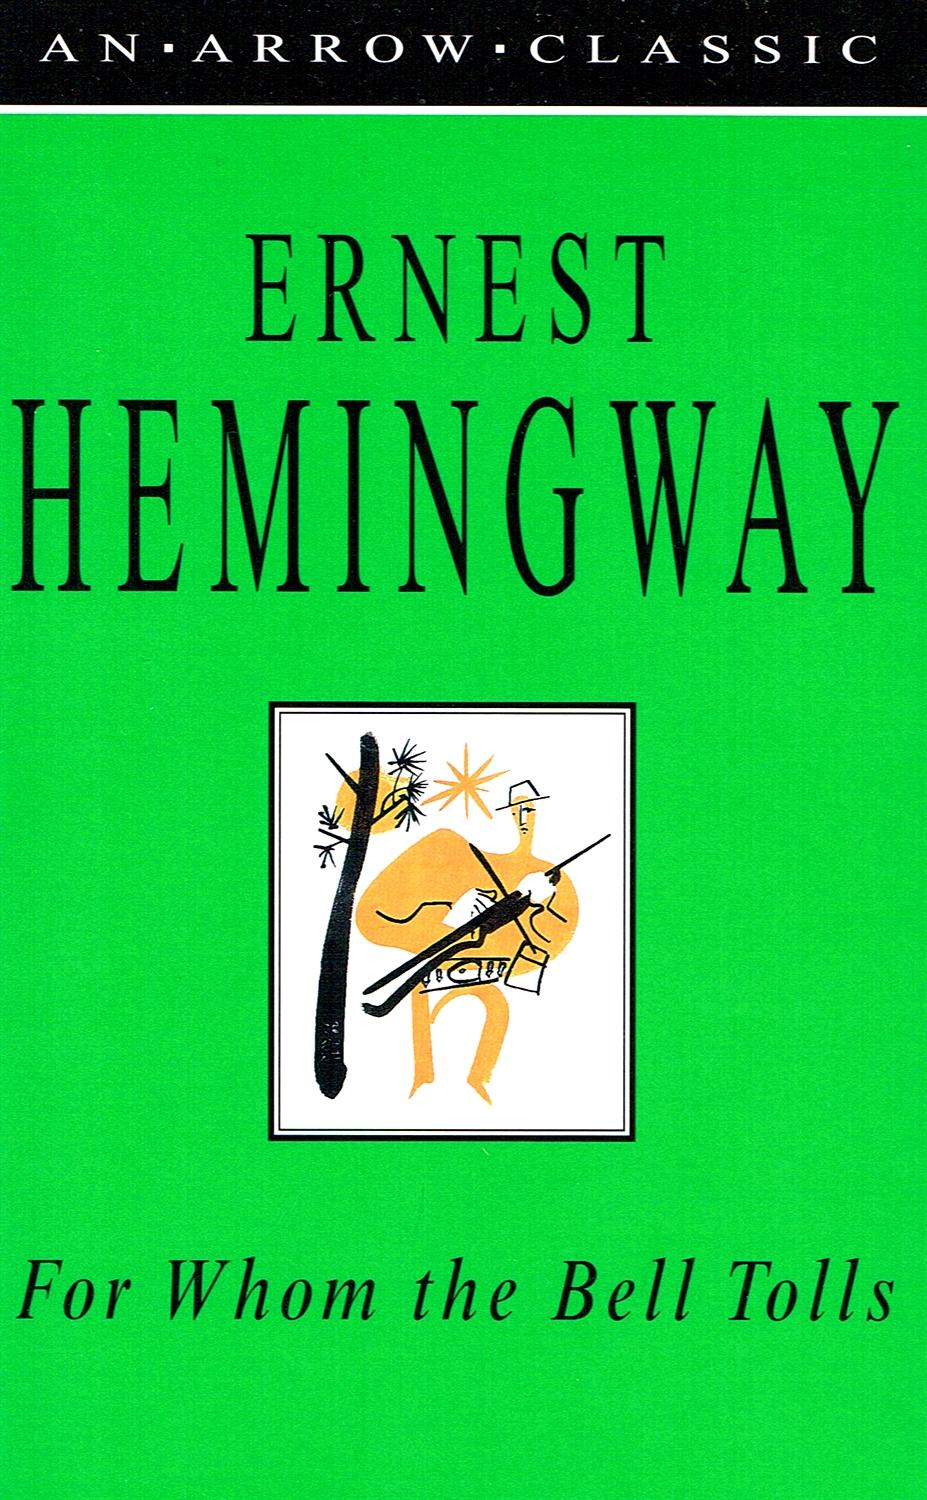 Roman Ernest Hemingway For Whom the Bell Tolls: Summary, Characters 20